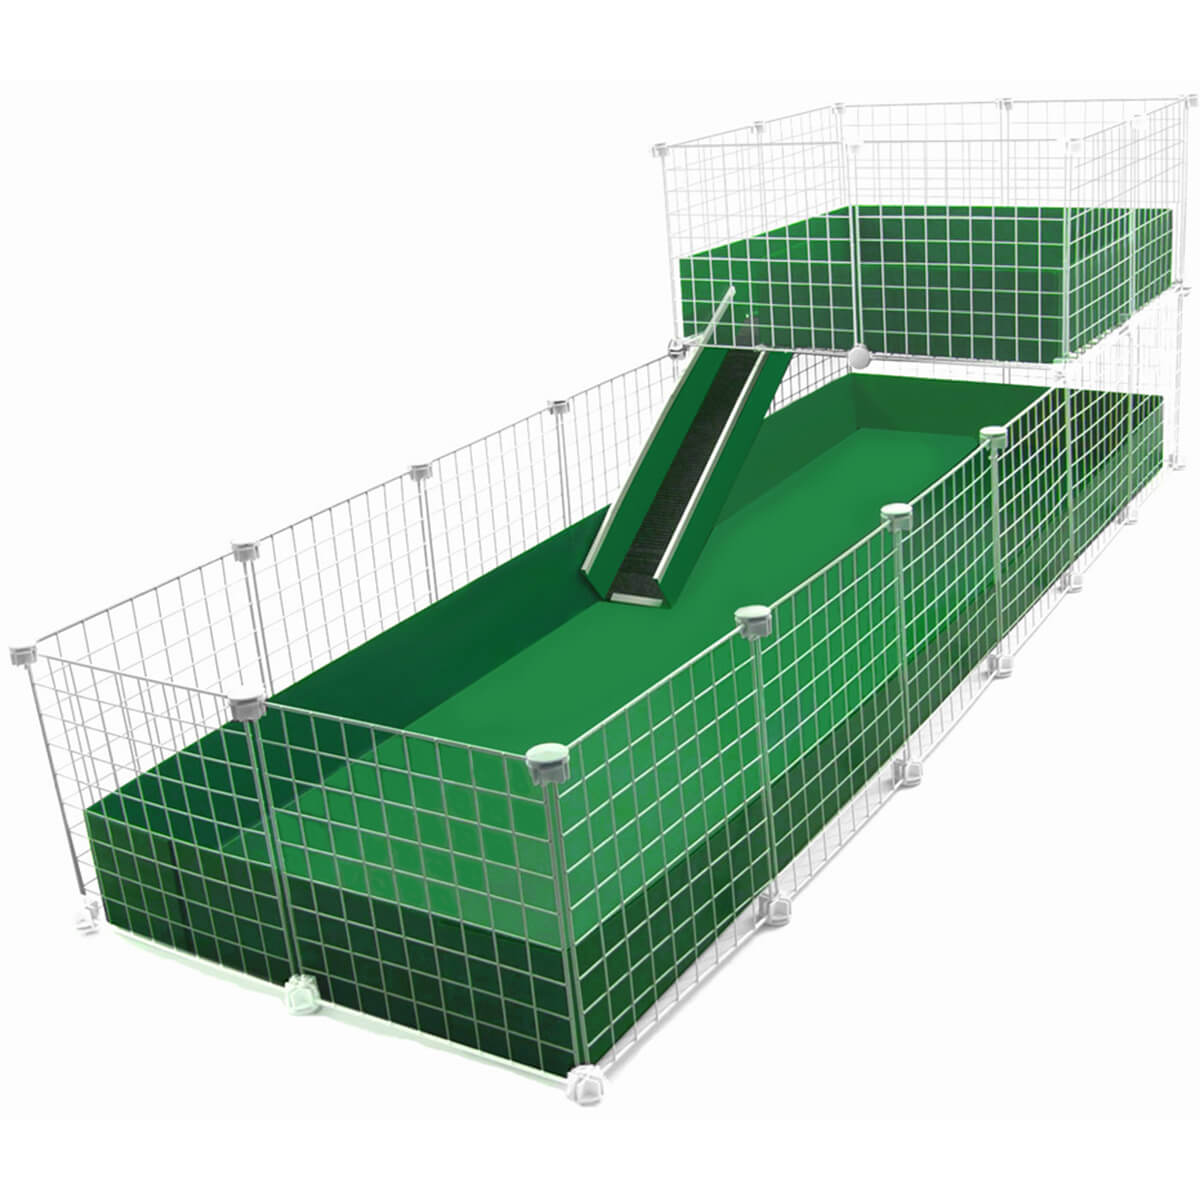 Jumbo 2x6 grids wide loft deluxe cages c c cages for Coroplast guinea pig cage for sale